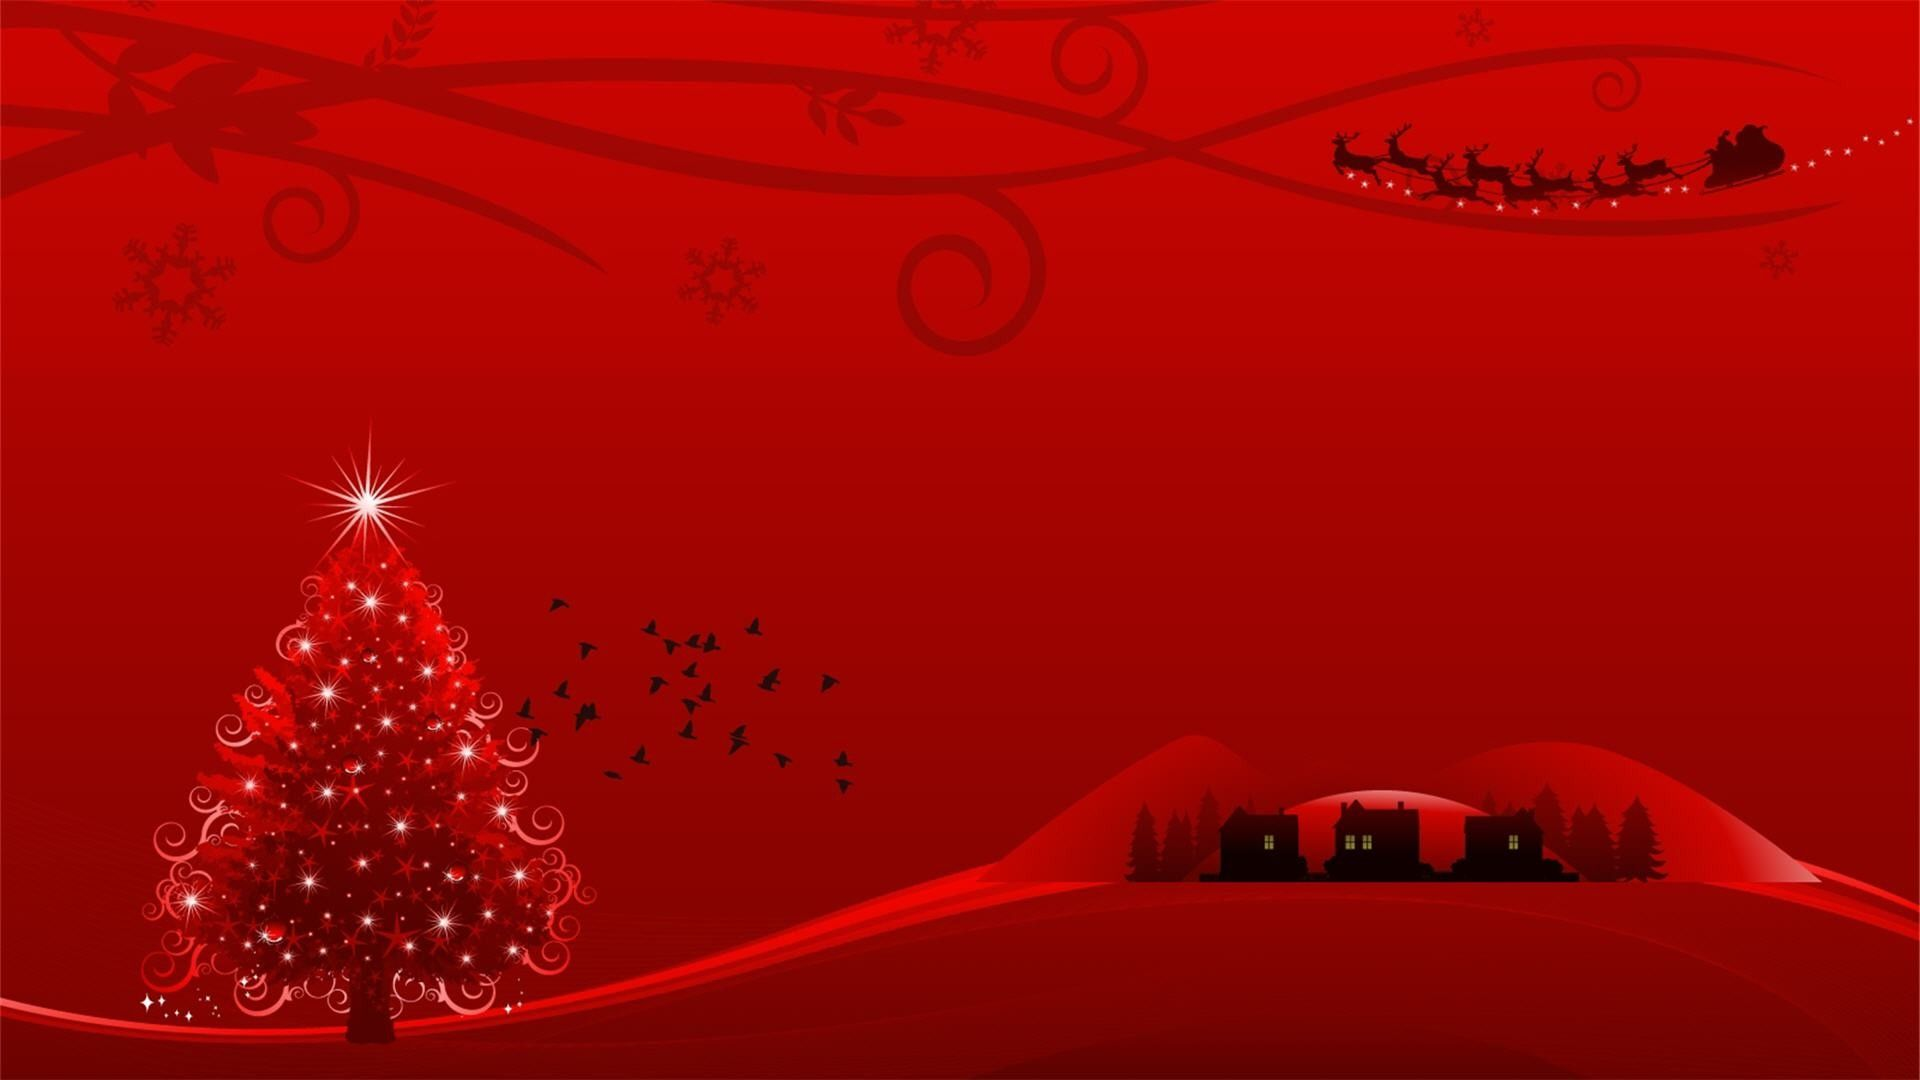 Red Christmas Wallpapers Top Free Red Christmas Backgrounds Wallpaperaccess